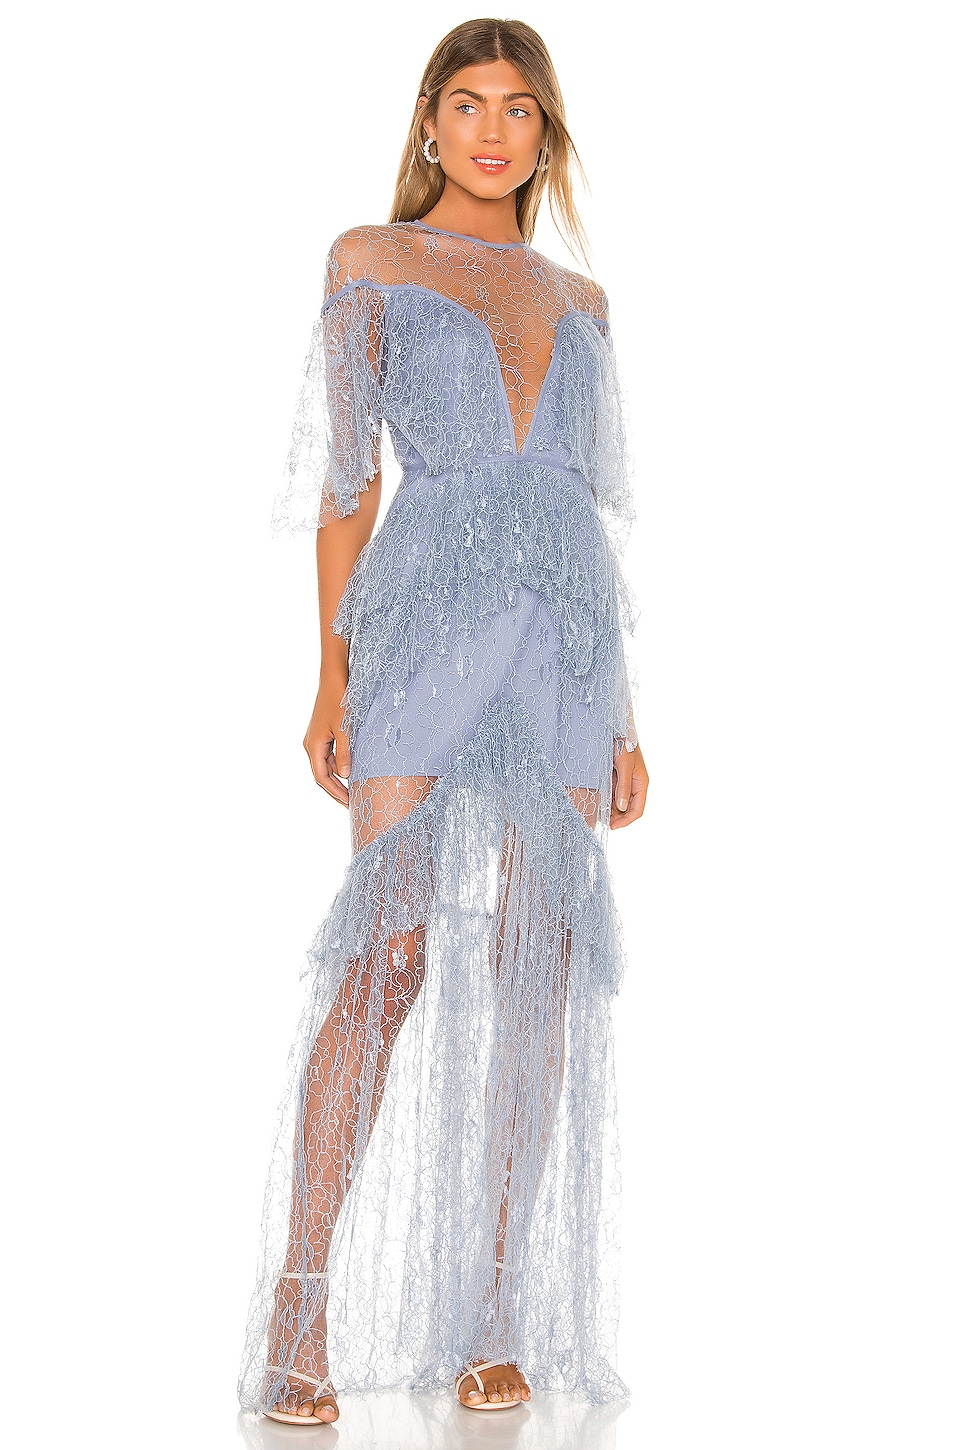 Alice McCall Magicians Daughter Gown in Mist